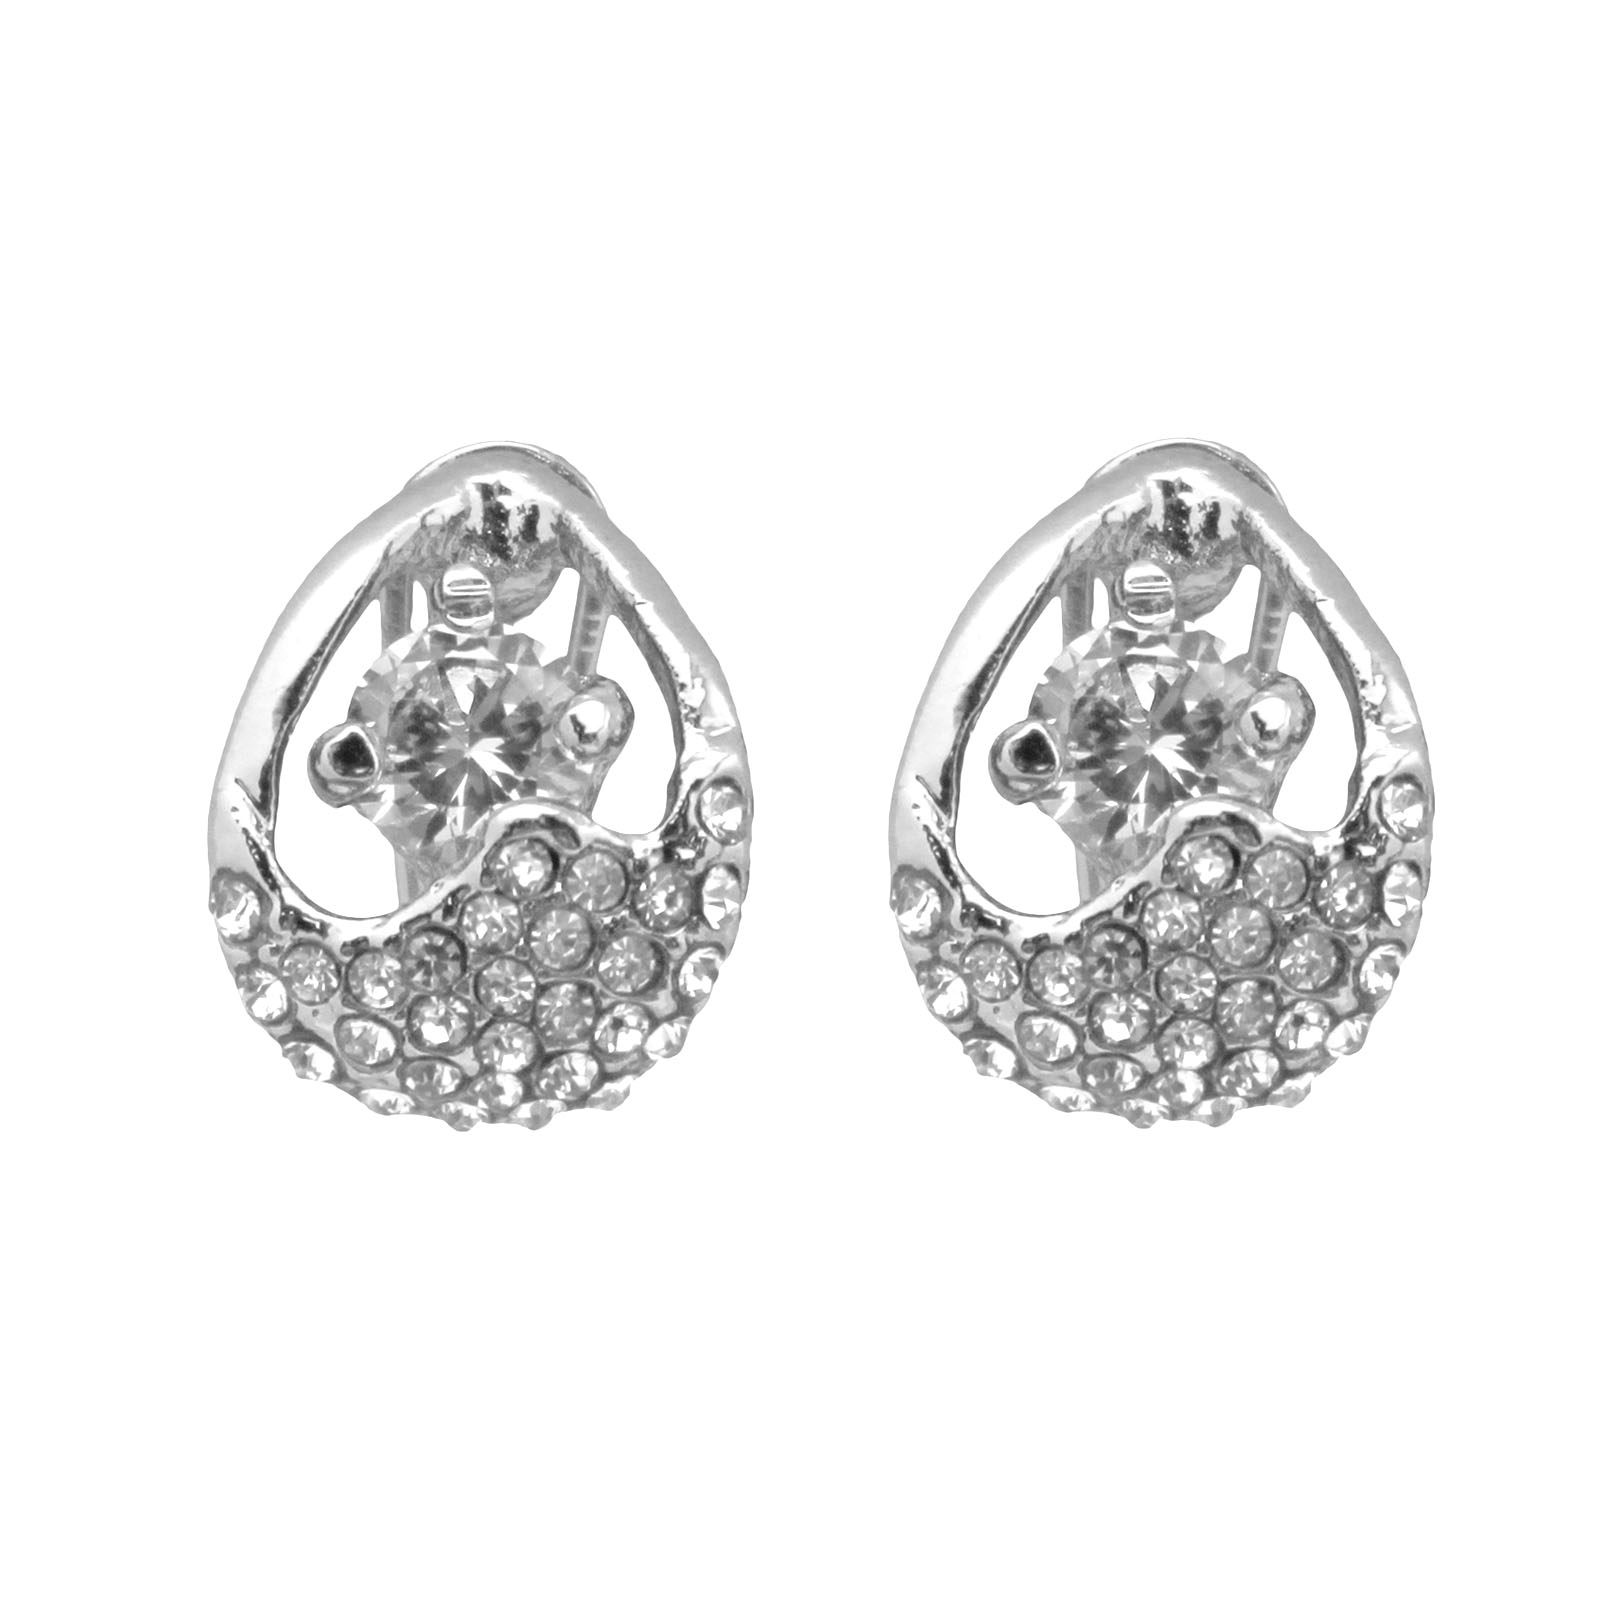 1 Pair Gold Plated Crystal Diamond Earrings Clip On Ear Studs Women Gift